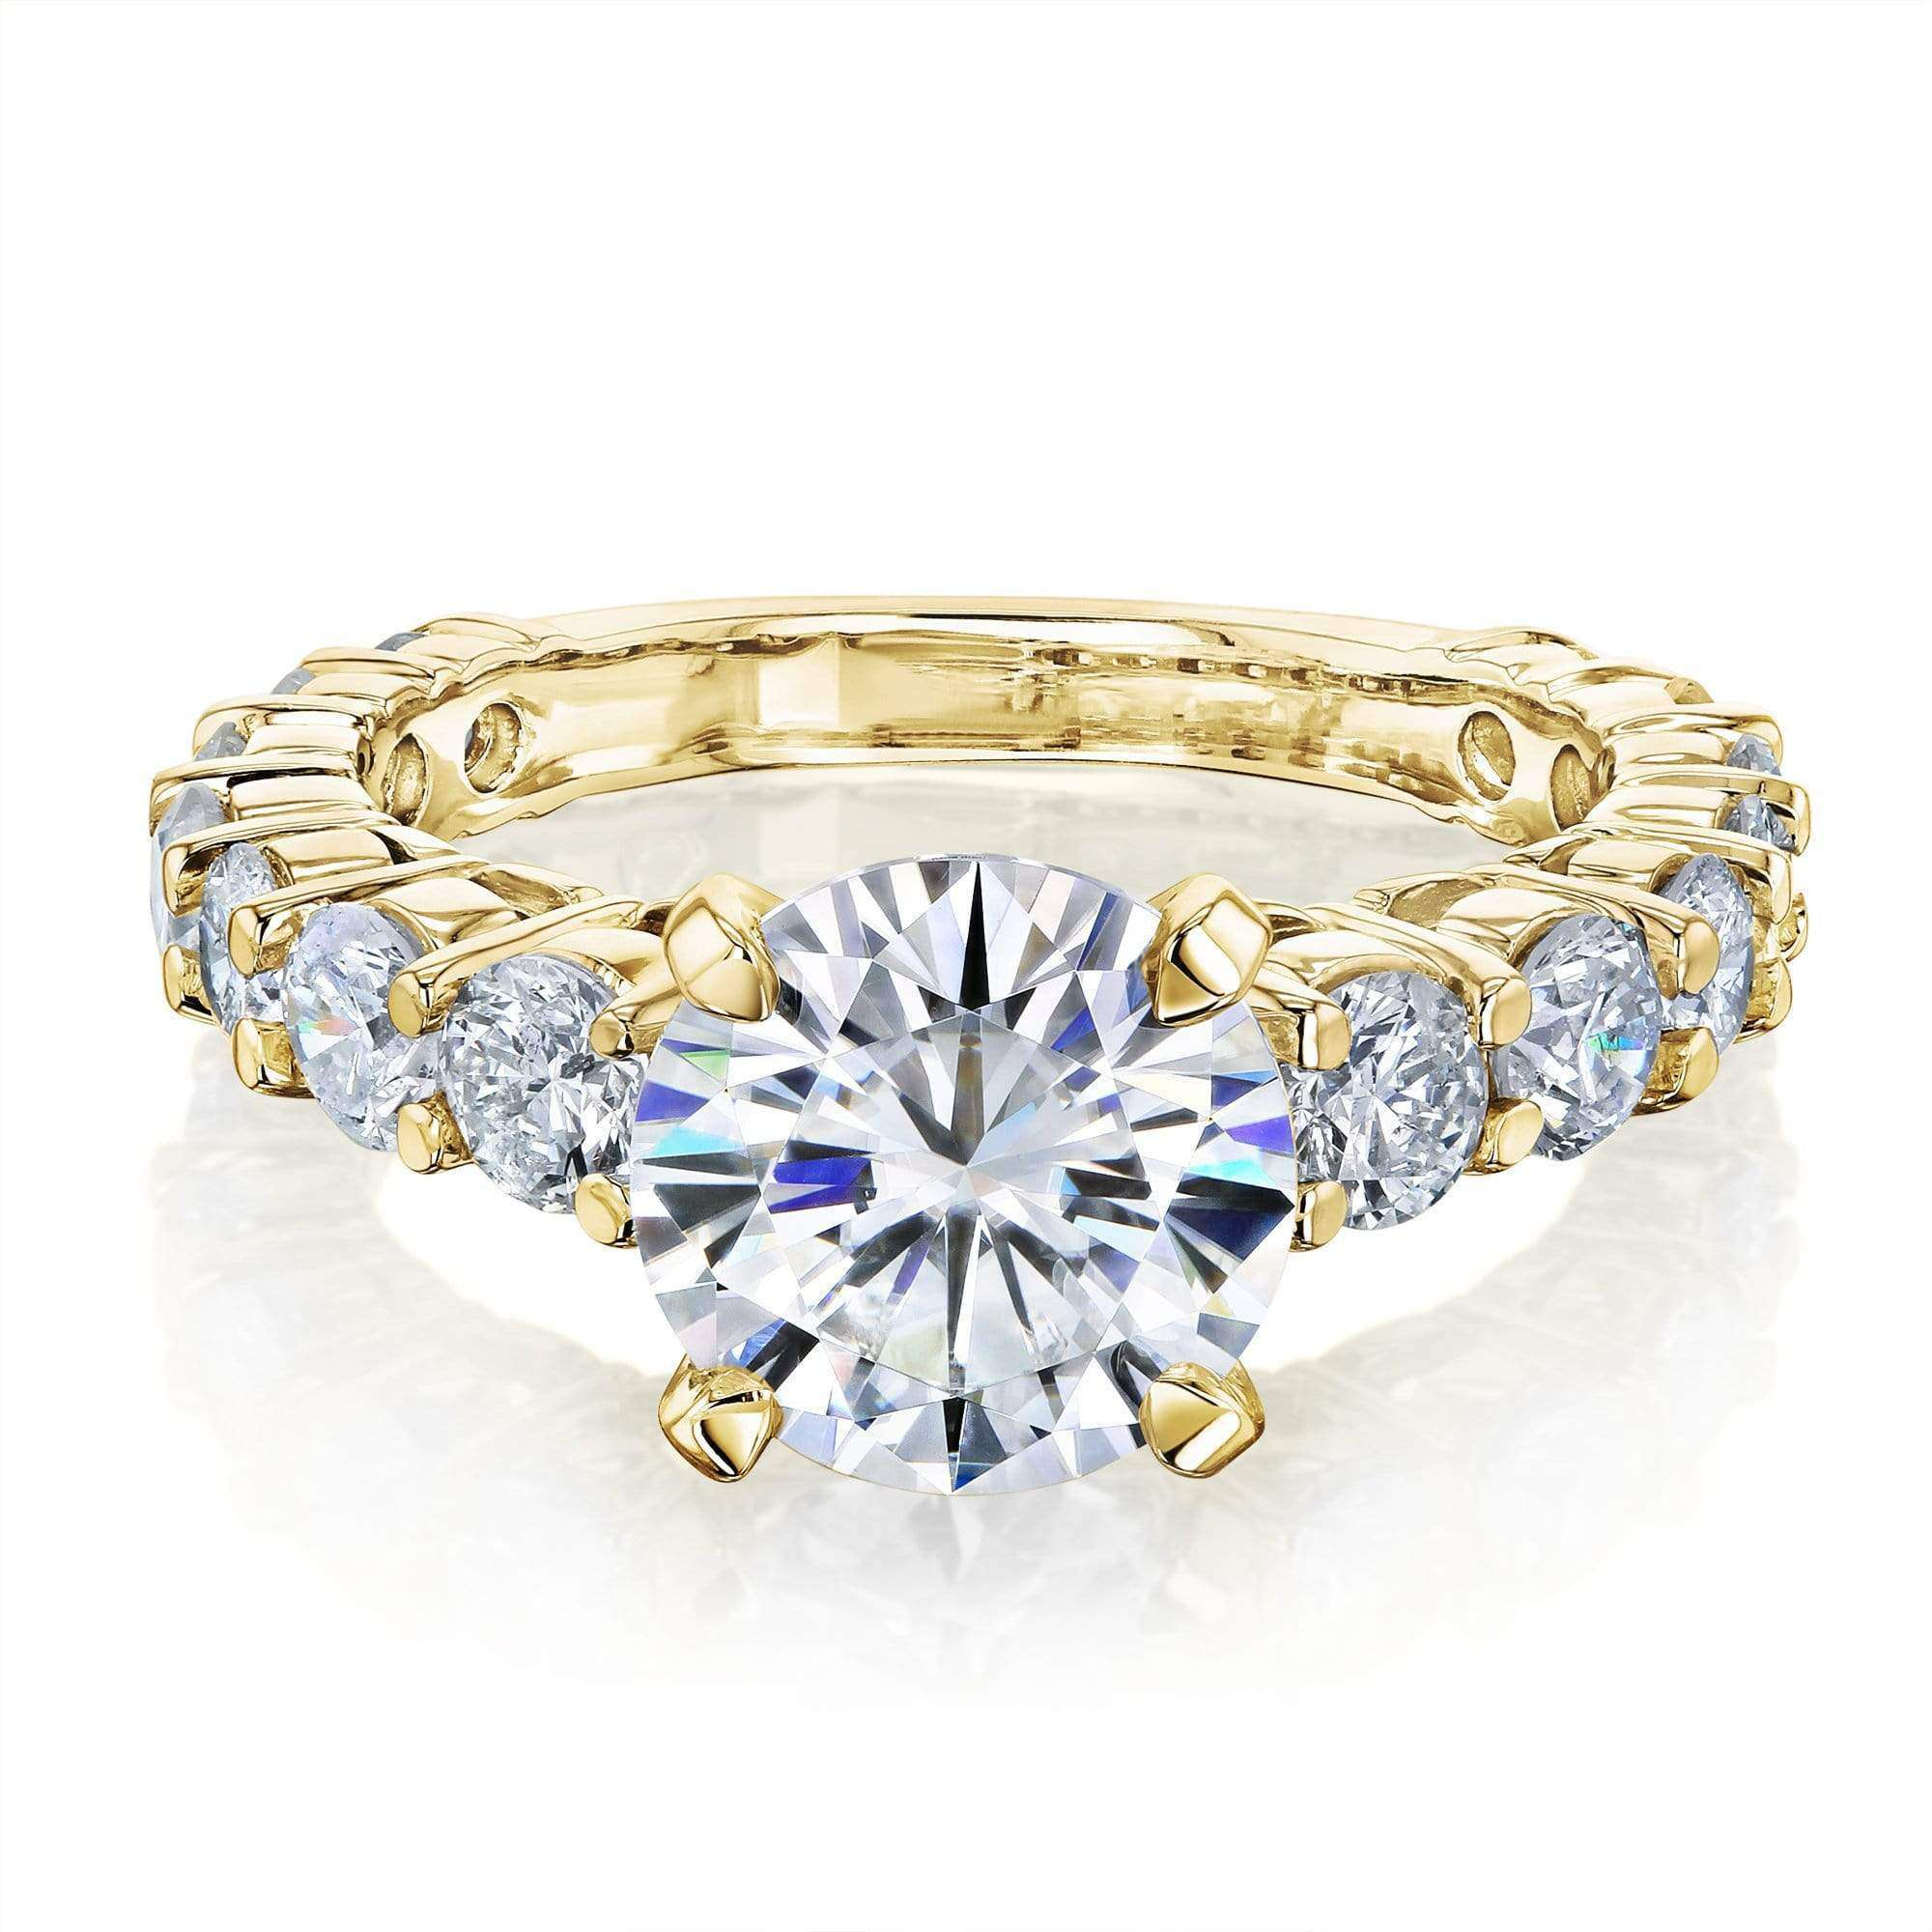 Cheap 1.9ct Forever One Moissanite and 1-1/3ct Diamond Ring 3 1/4ct TCW - yellow-gold 5.0